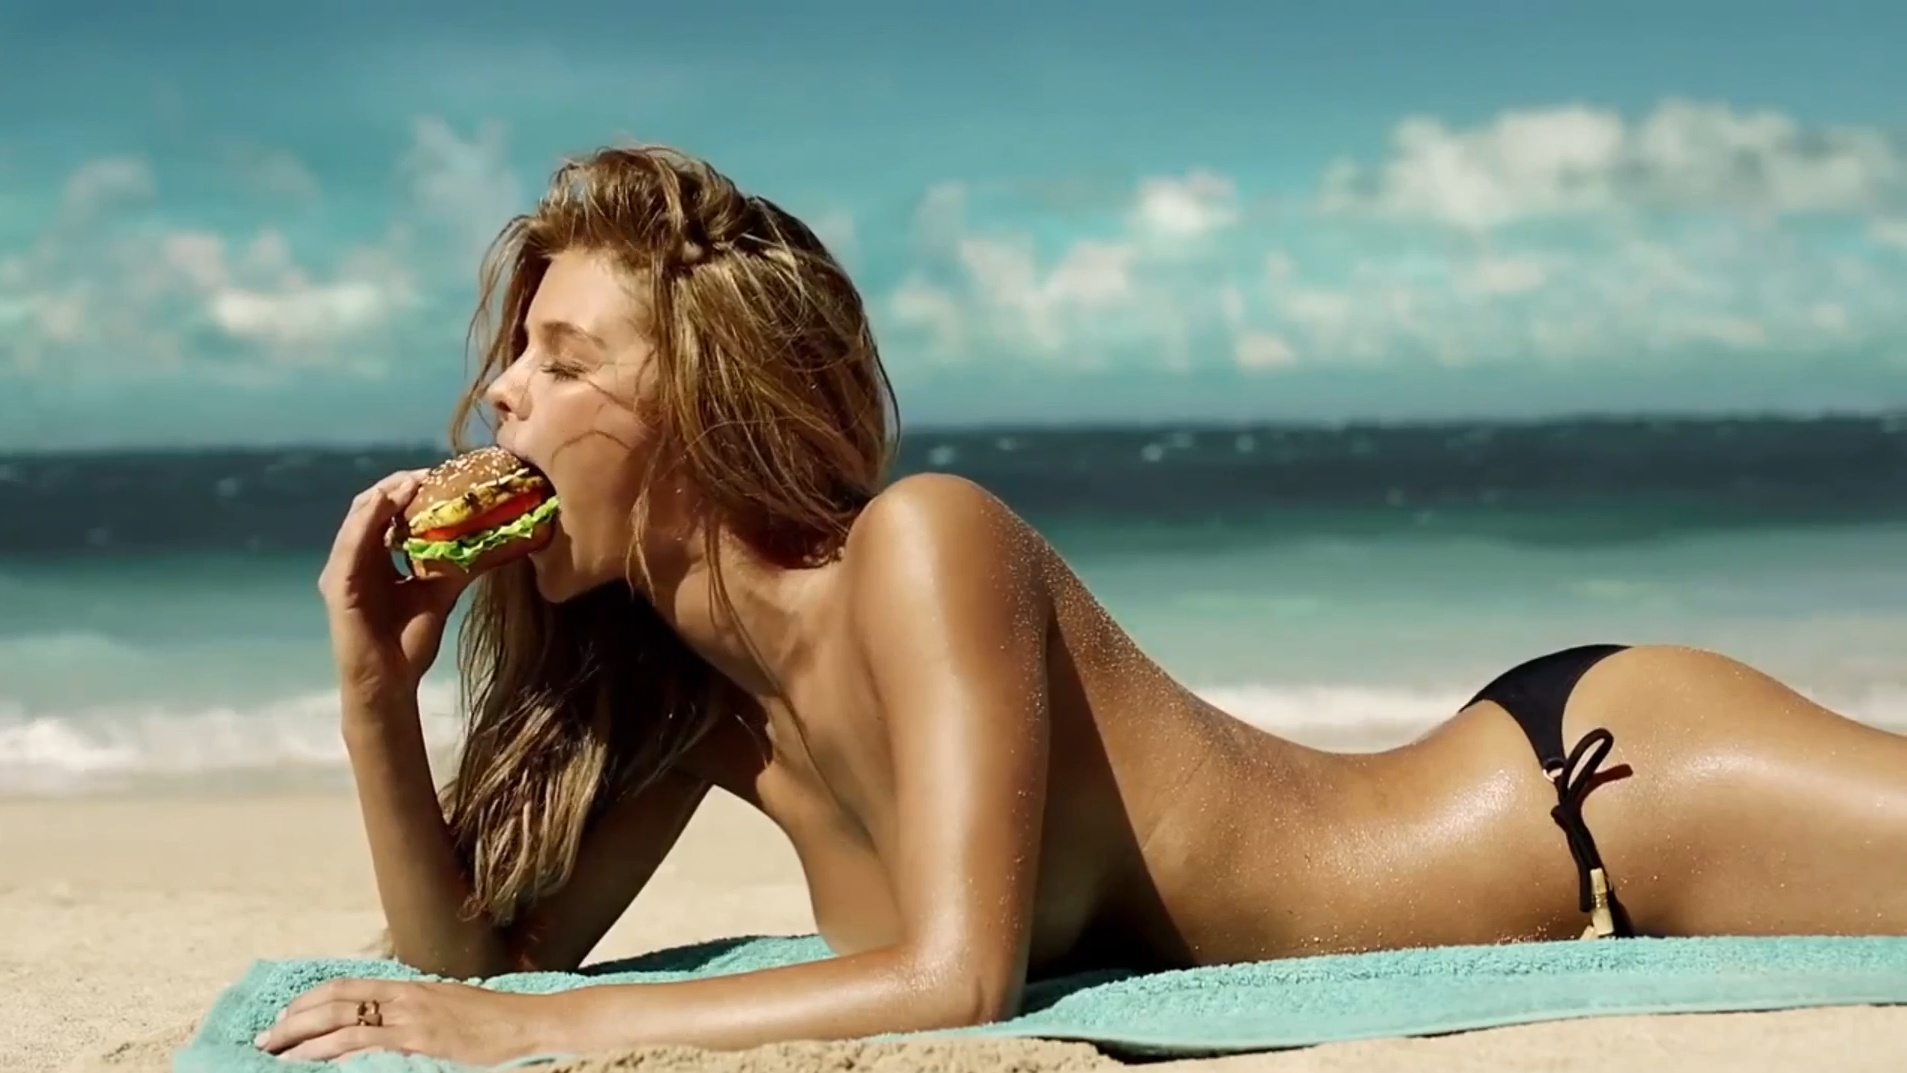 nina-agdal-carls jr ad-2013